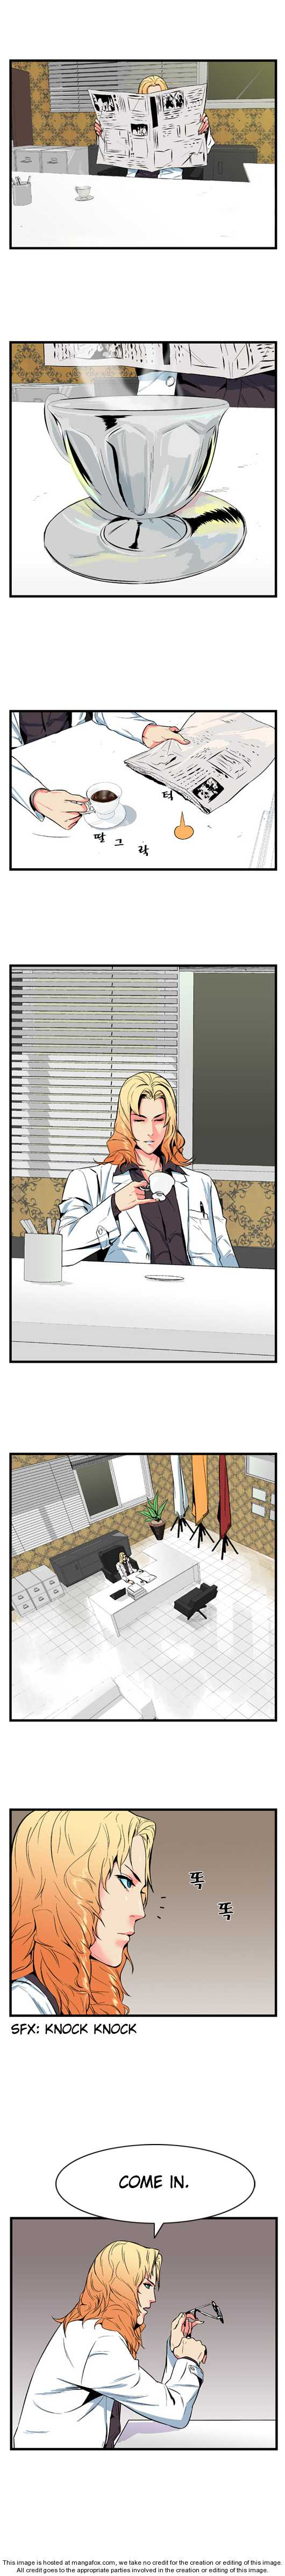 Noblesse 5 Page 2